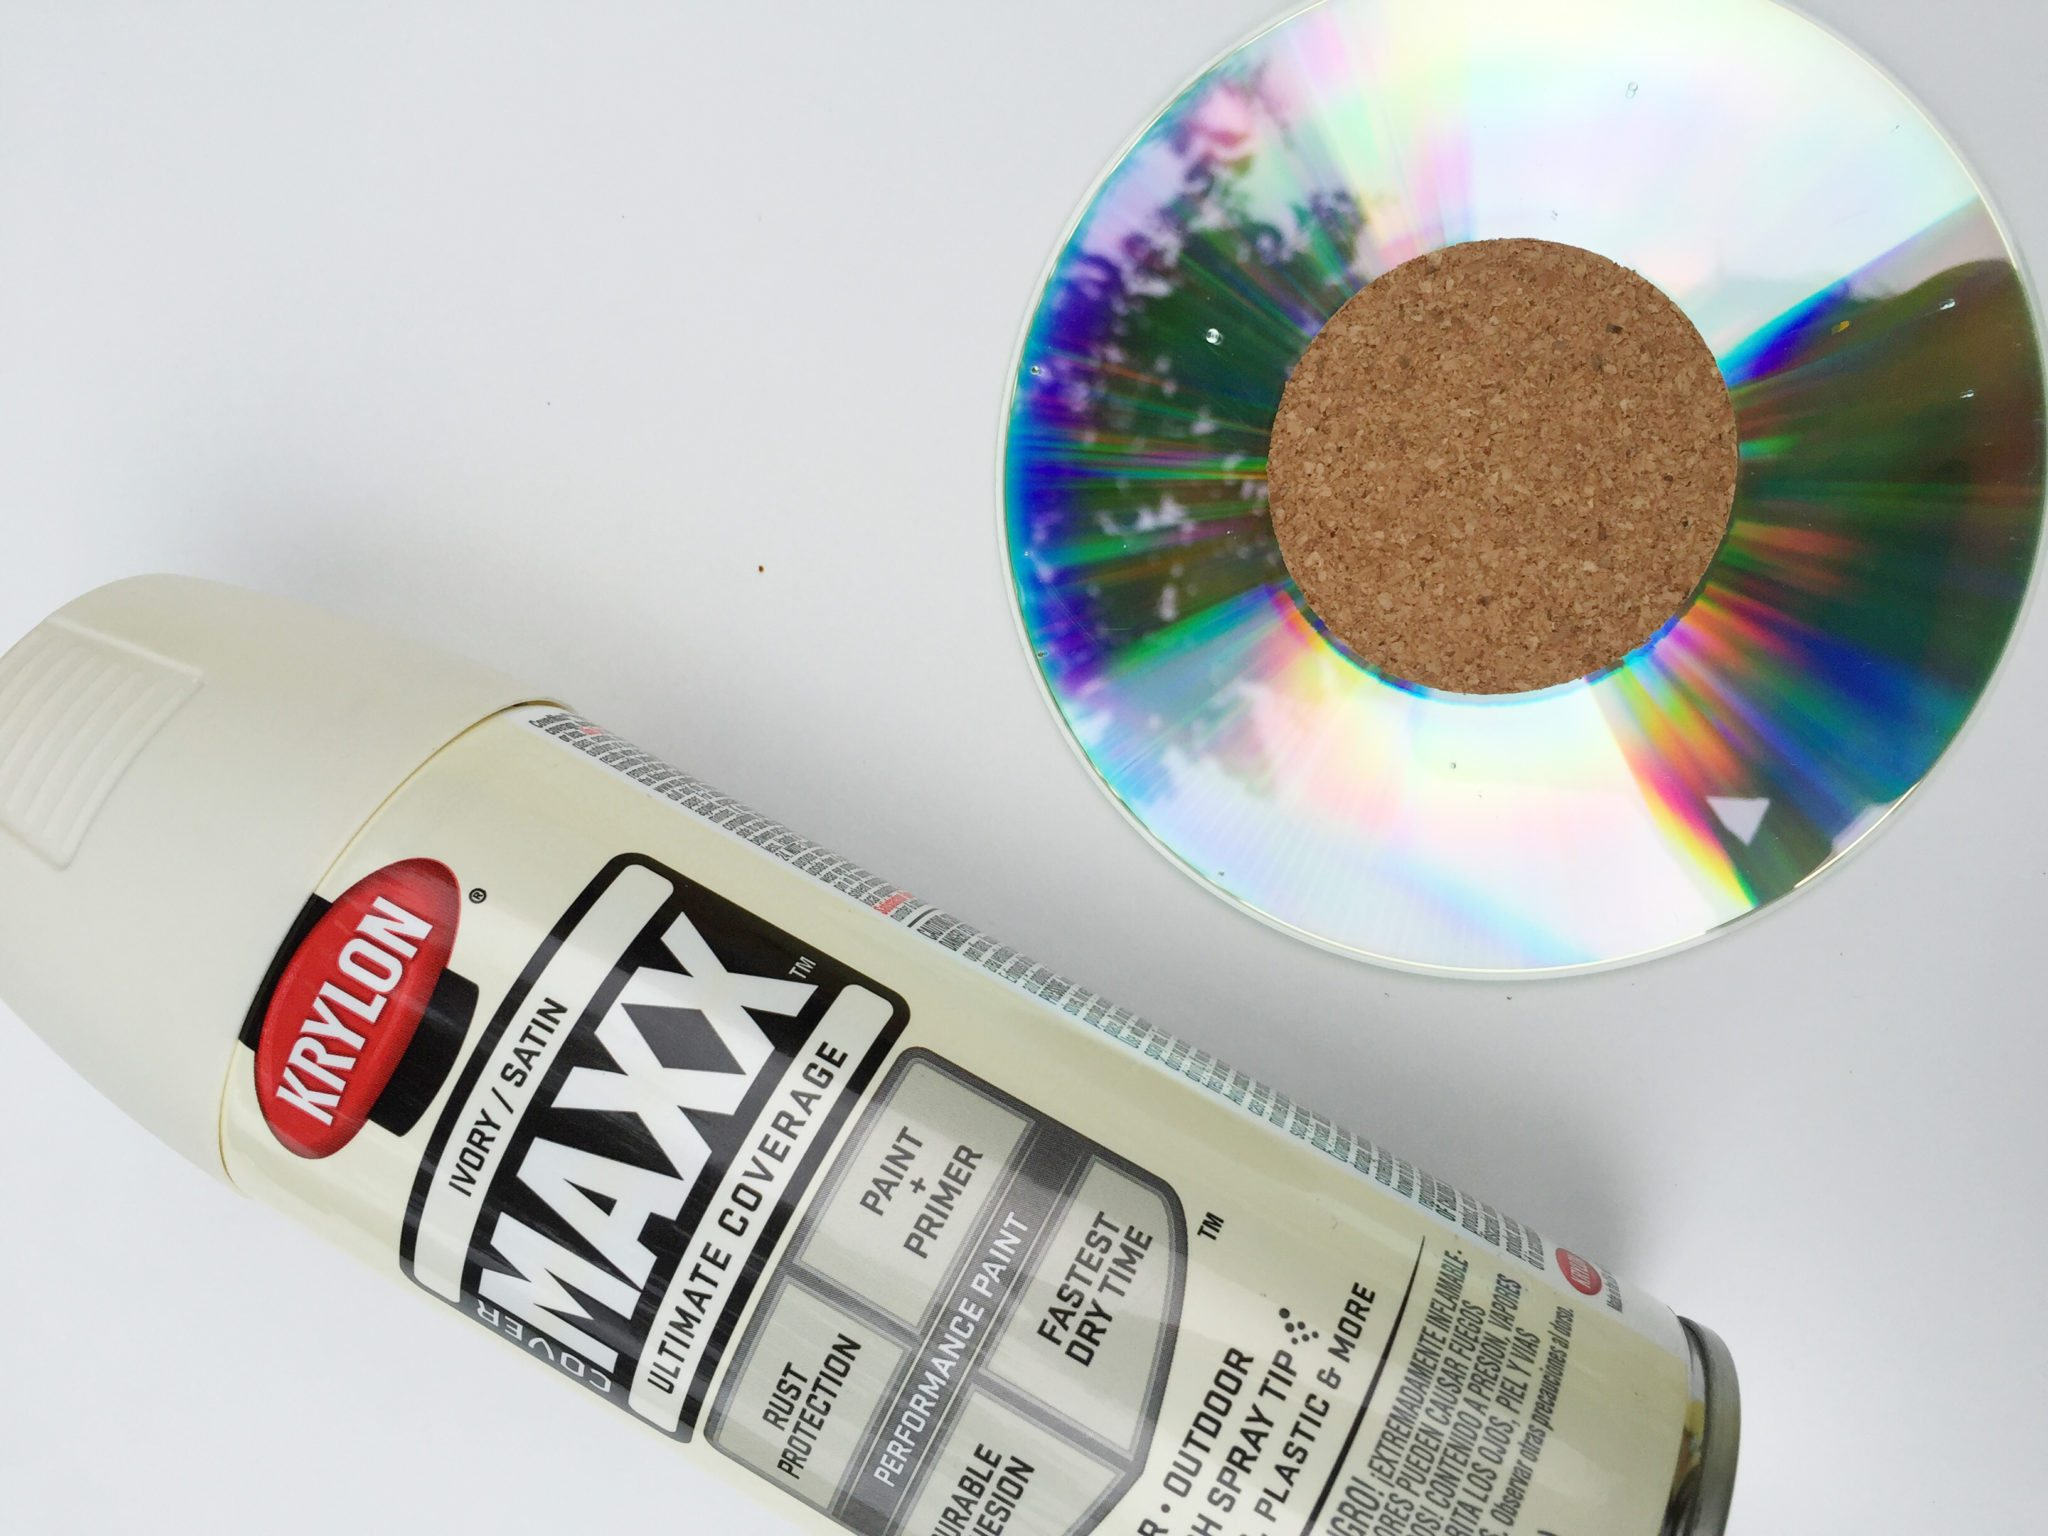 How to spray paint a compact disc.